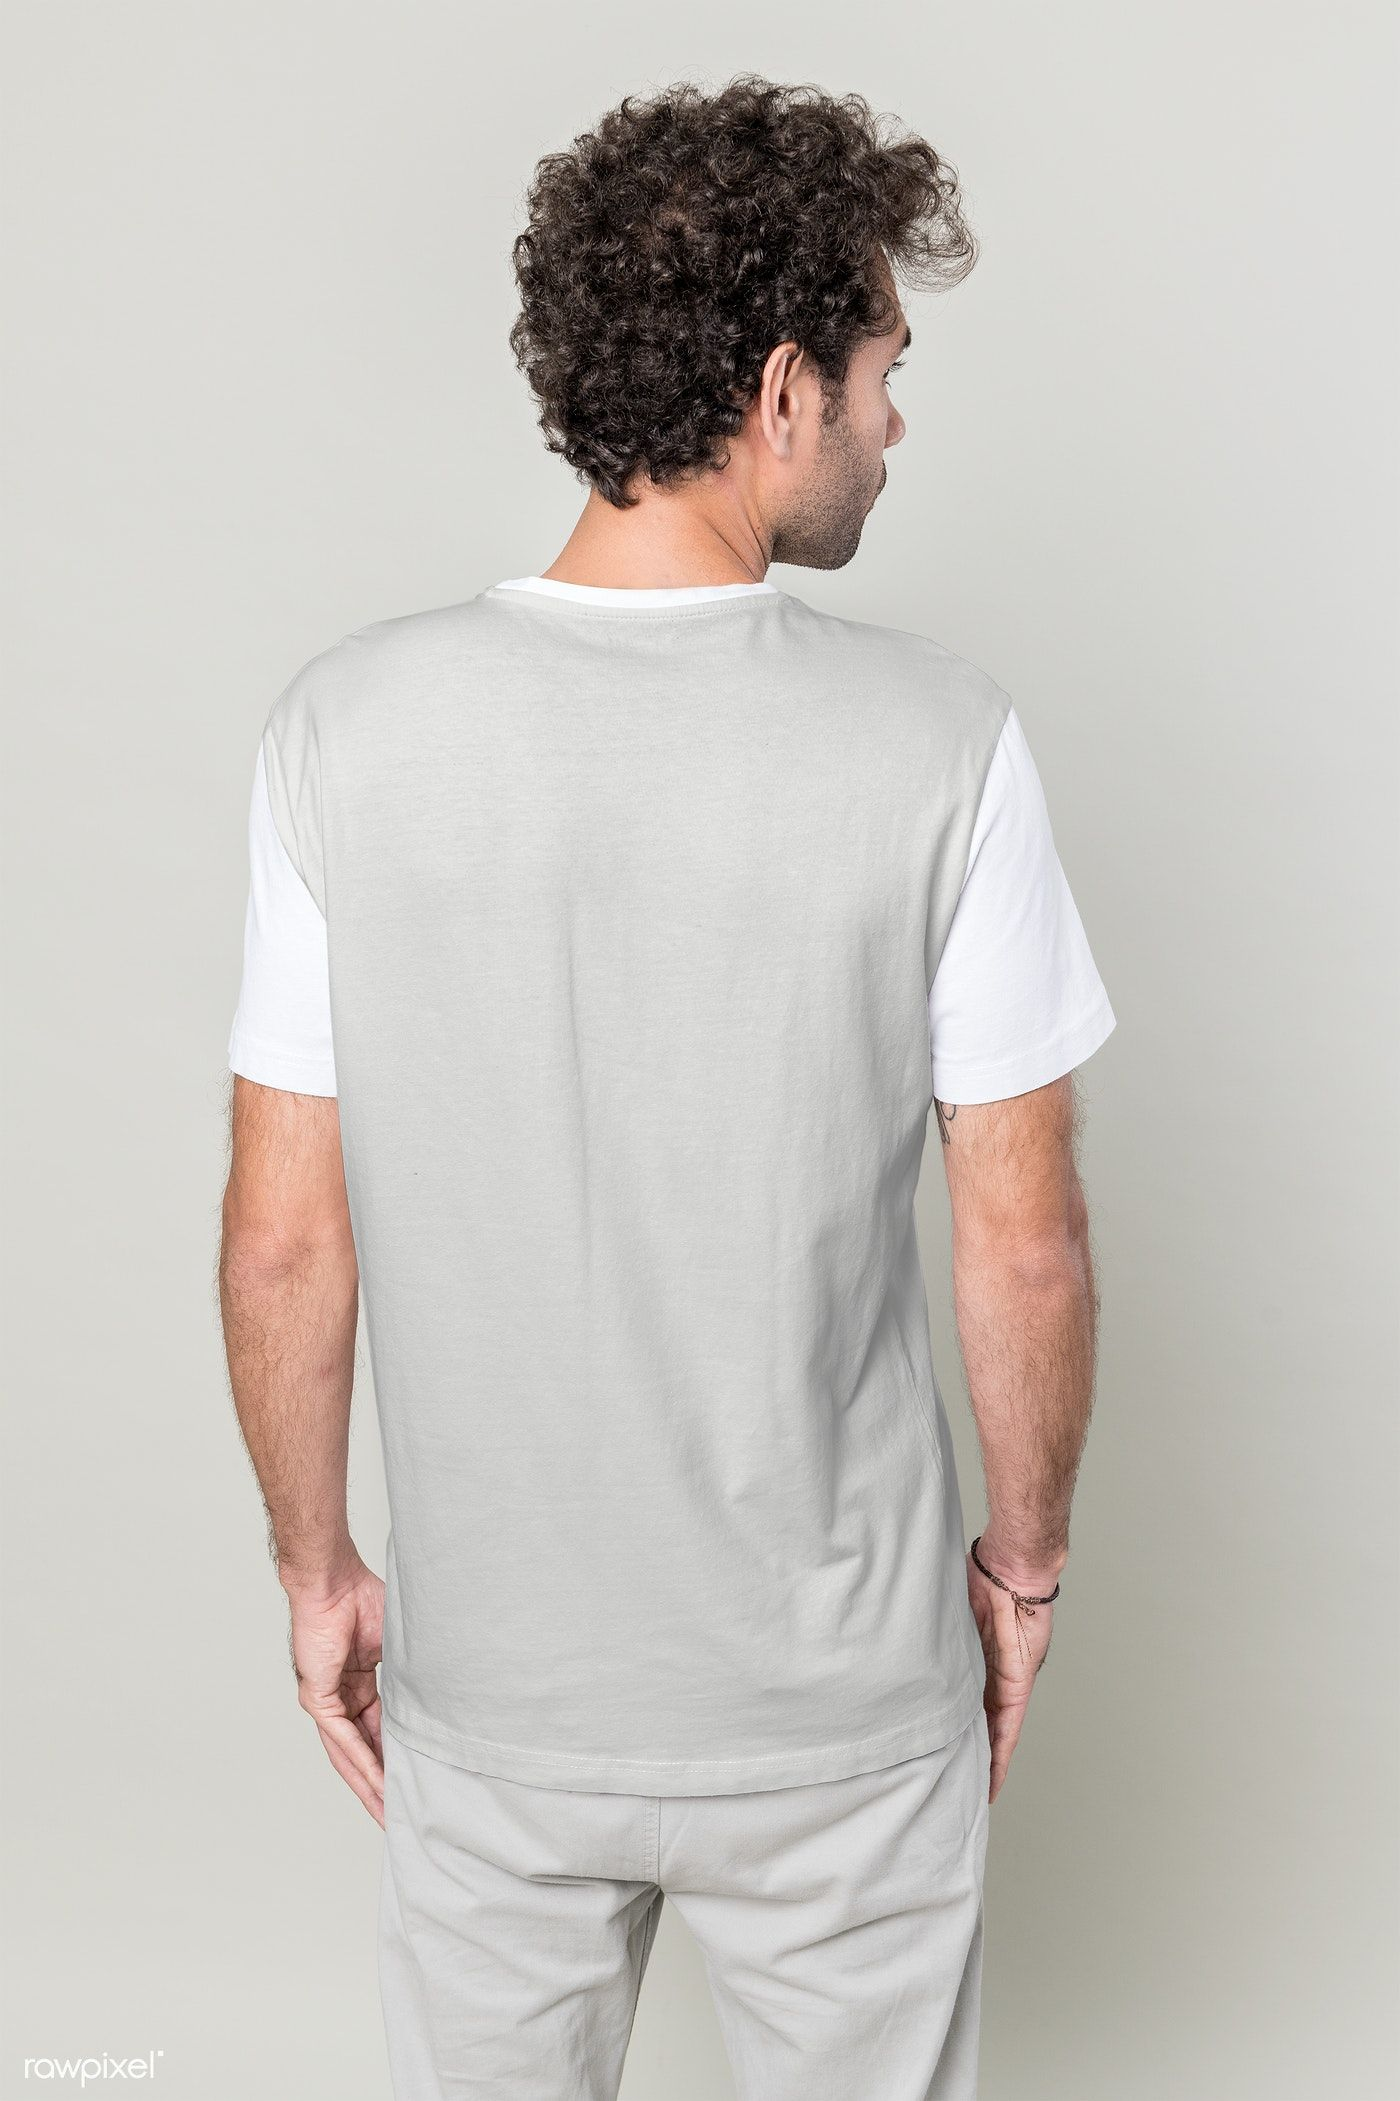 Back View Of Man In T Shirt Transparent Png Premium Image By Rawpixel Com Teddy Rawpixel Orange T Shirts Denim Jacket With Hoodie T Shirt And Jeans